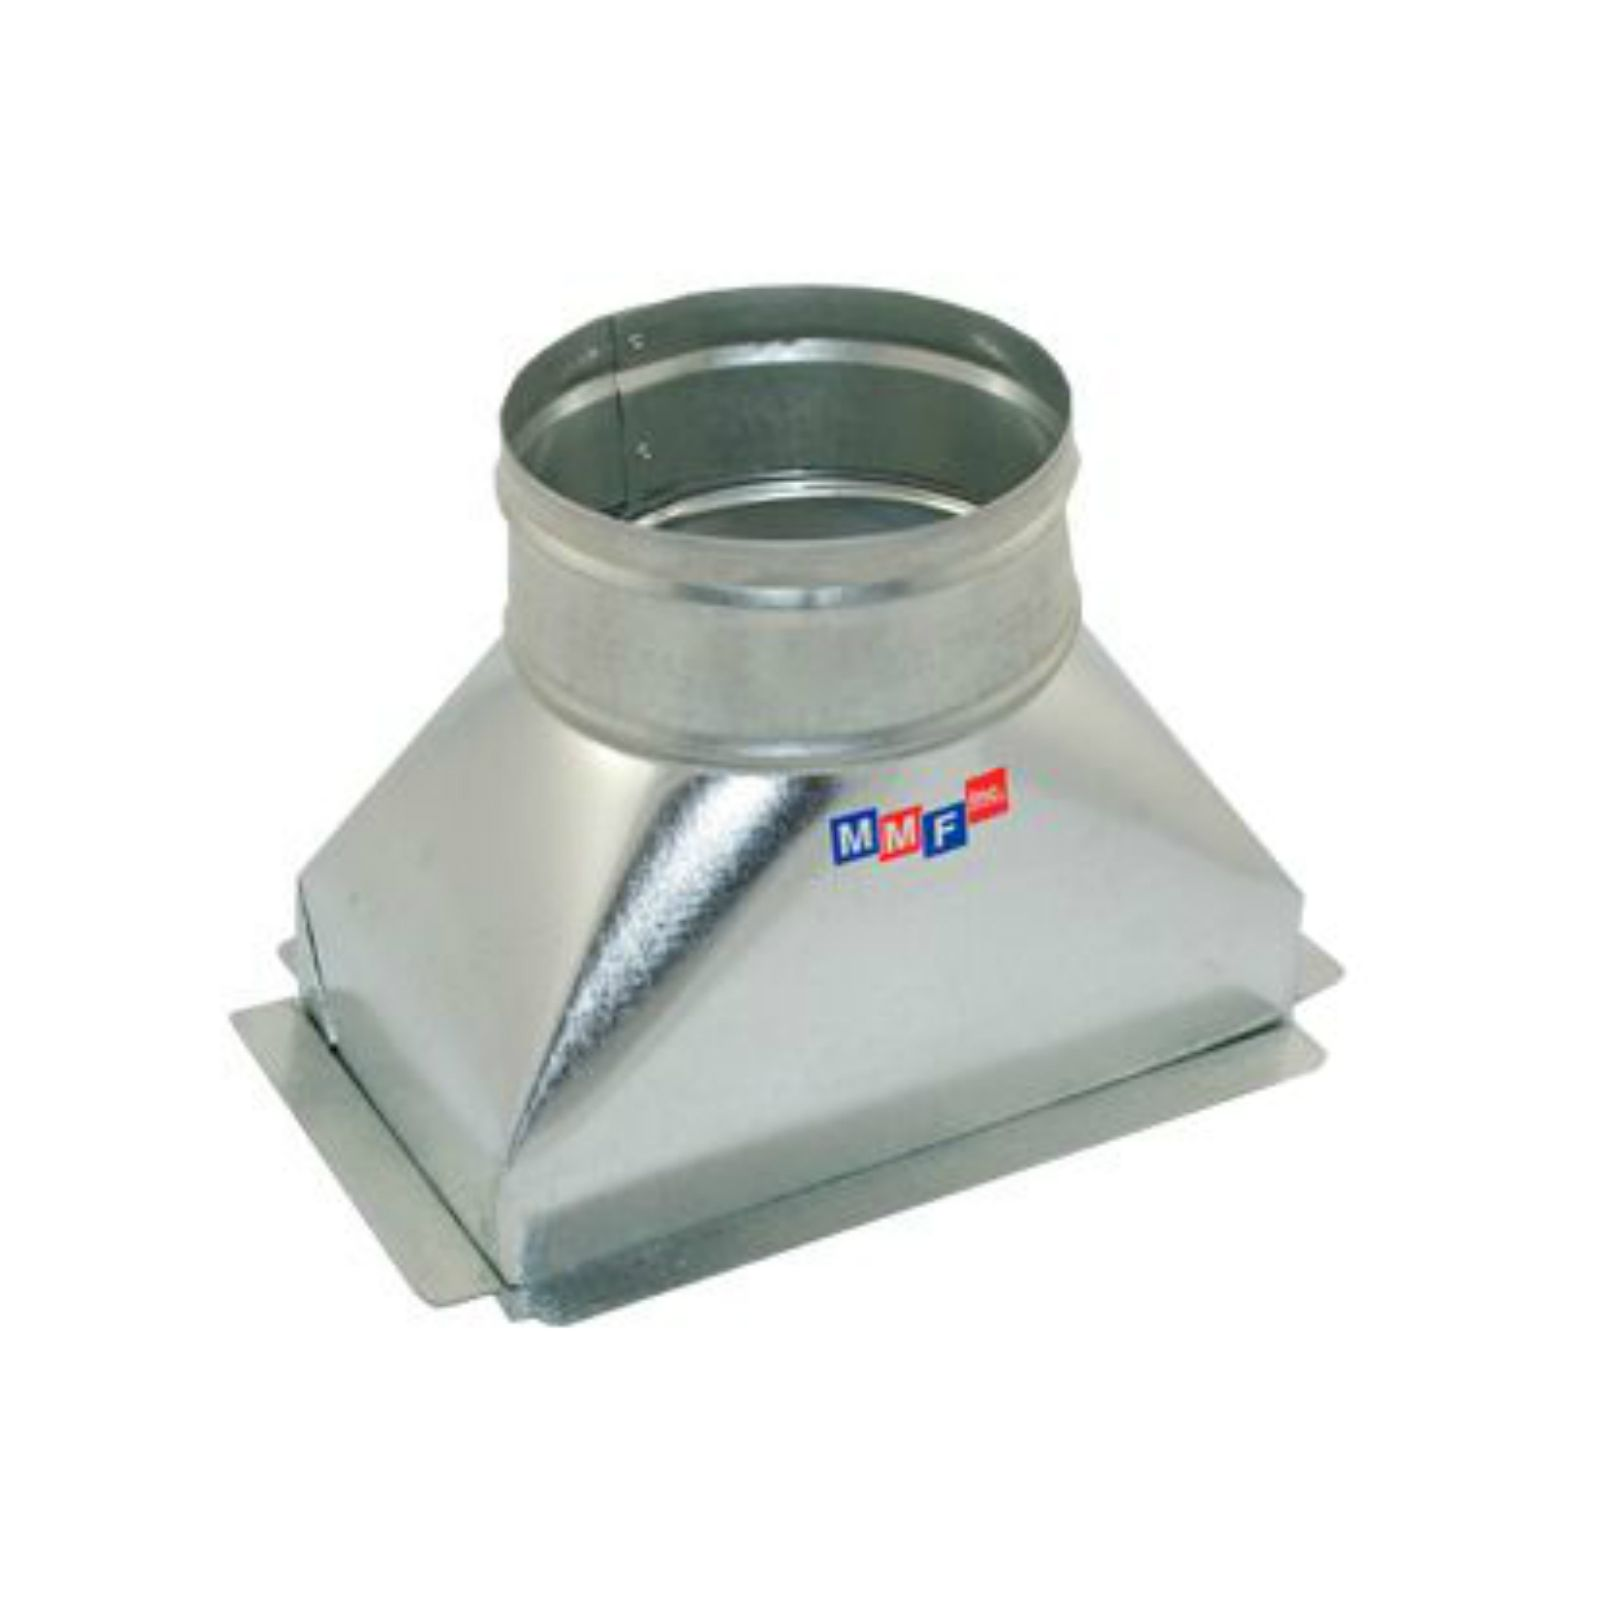 "Modular Metal BTSFG100605P - Sealed Floor Box - 30 Gauge - With Plaster Ground Flange 10"" X 06"" To 05"" Round"